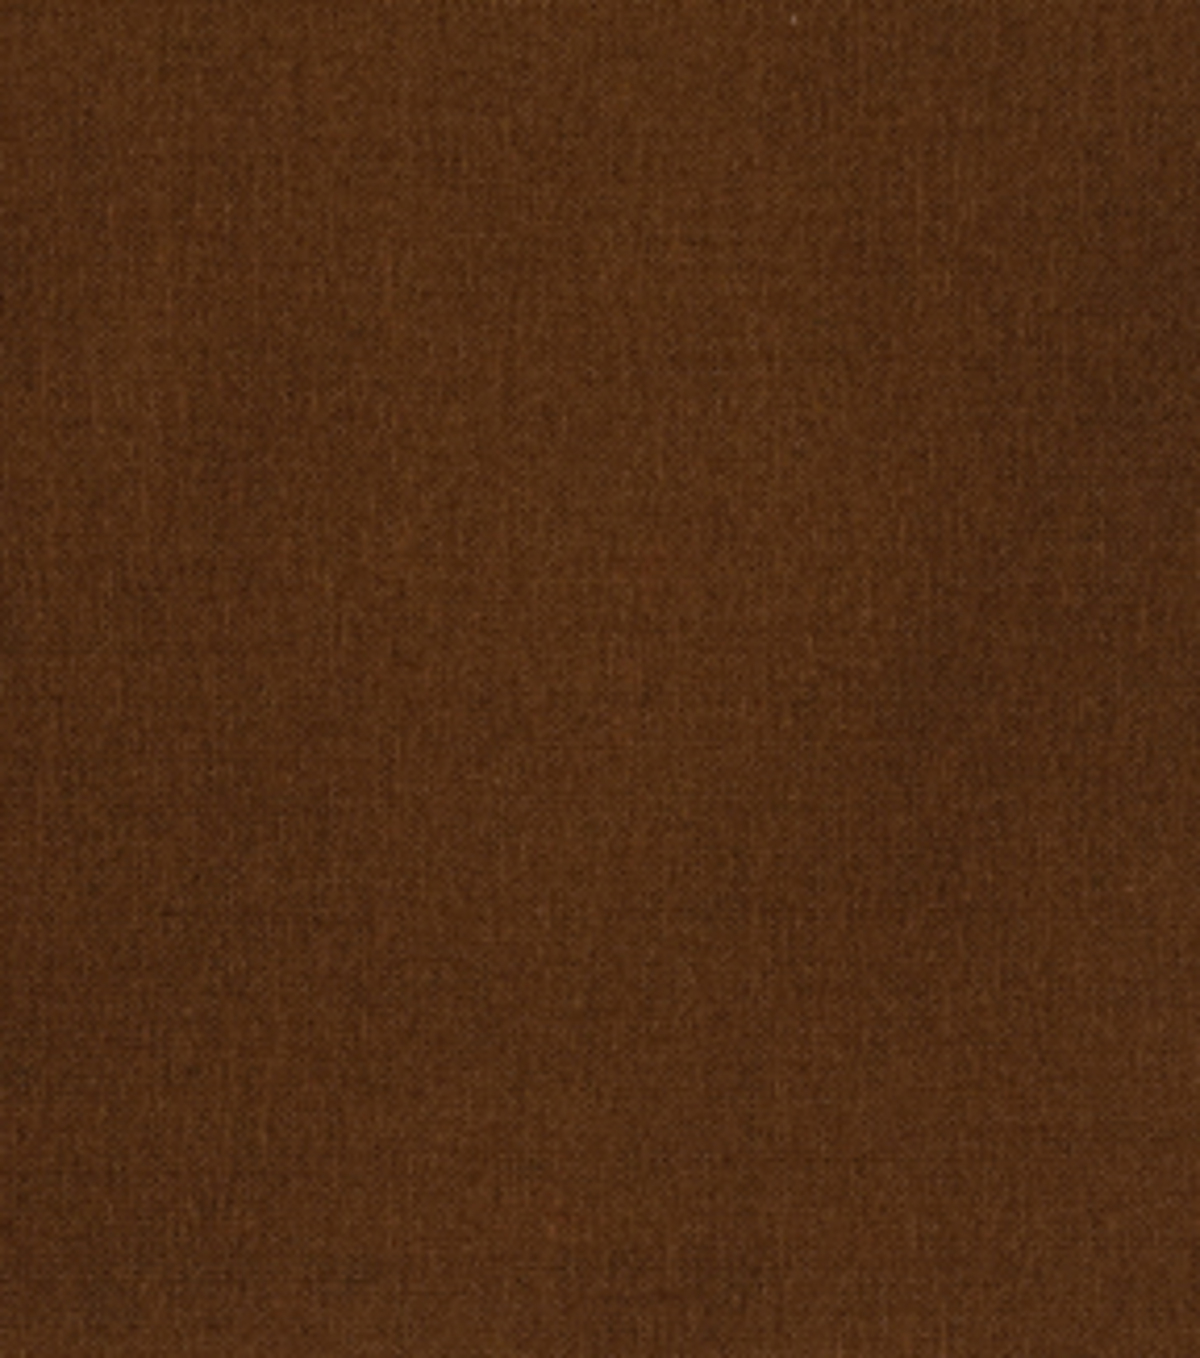 Home Decor 8\u0022x8\u0022 Fabric Swatch-Signature Series Ultra Taffeta Chestnut